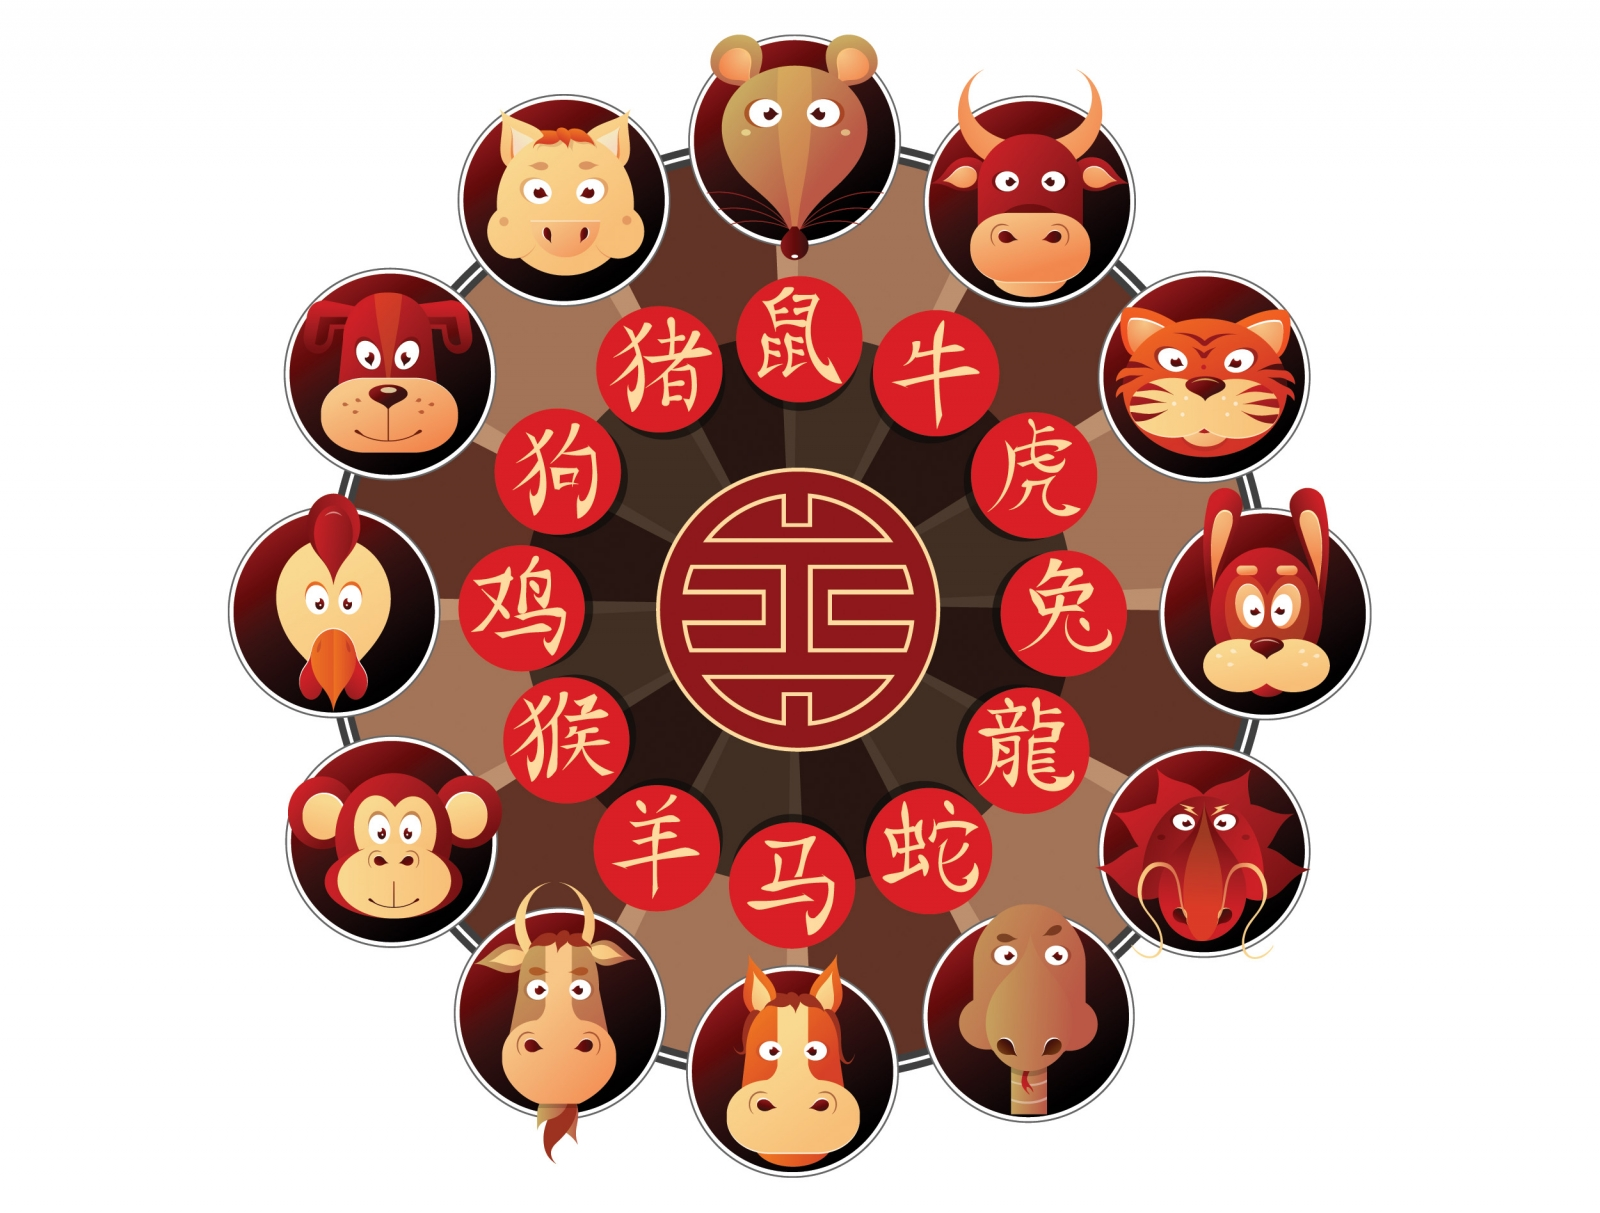 Chinese horoscope for 2017 for those born in the Year of the Rat